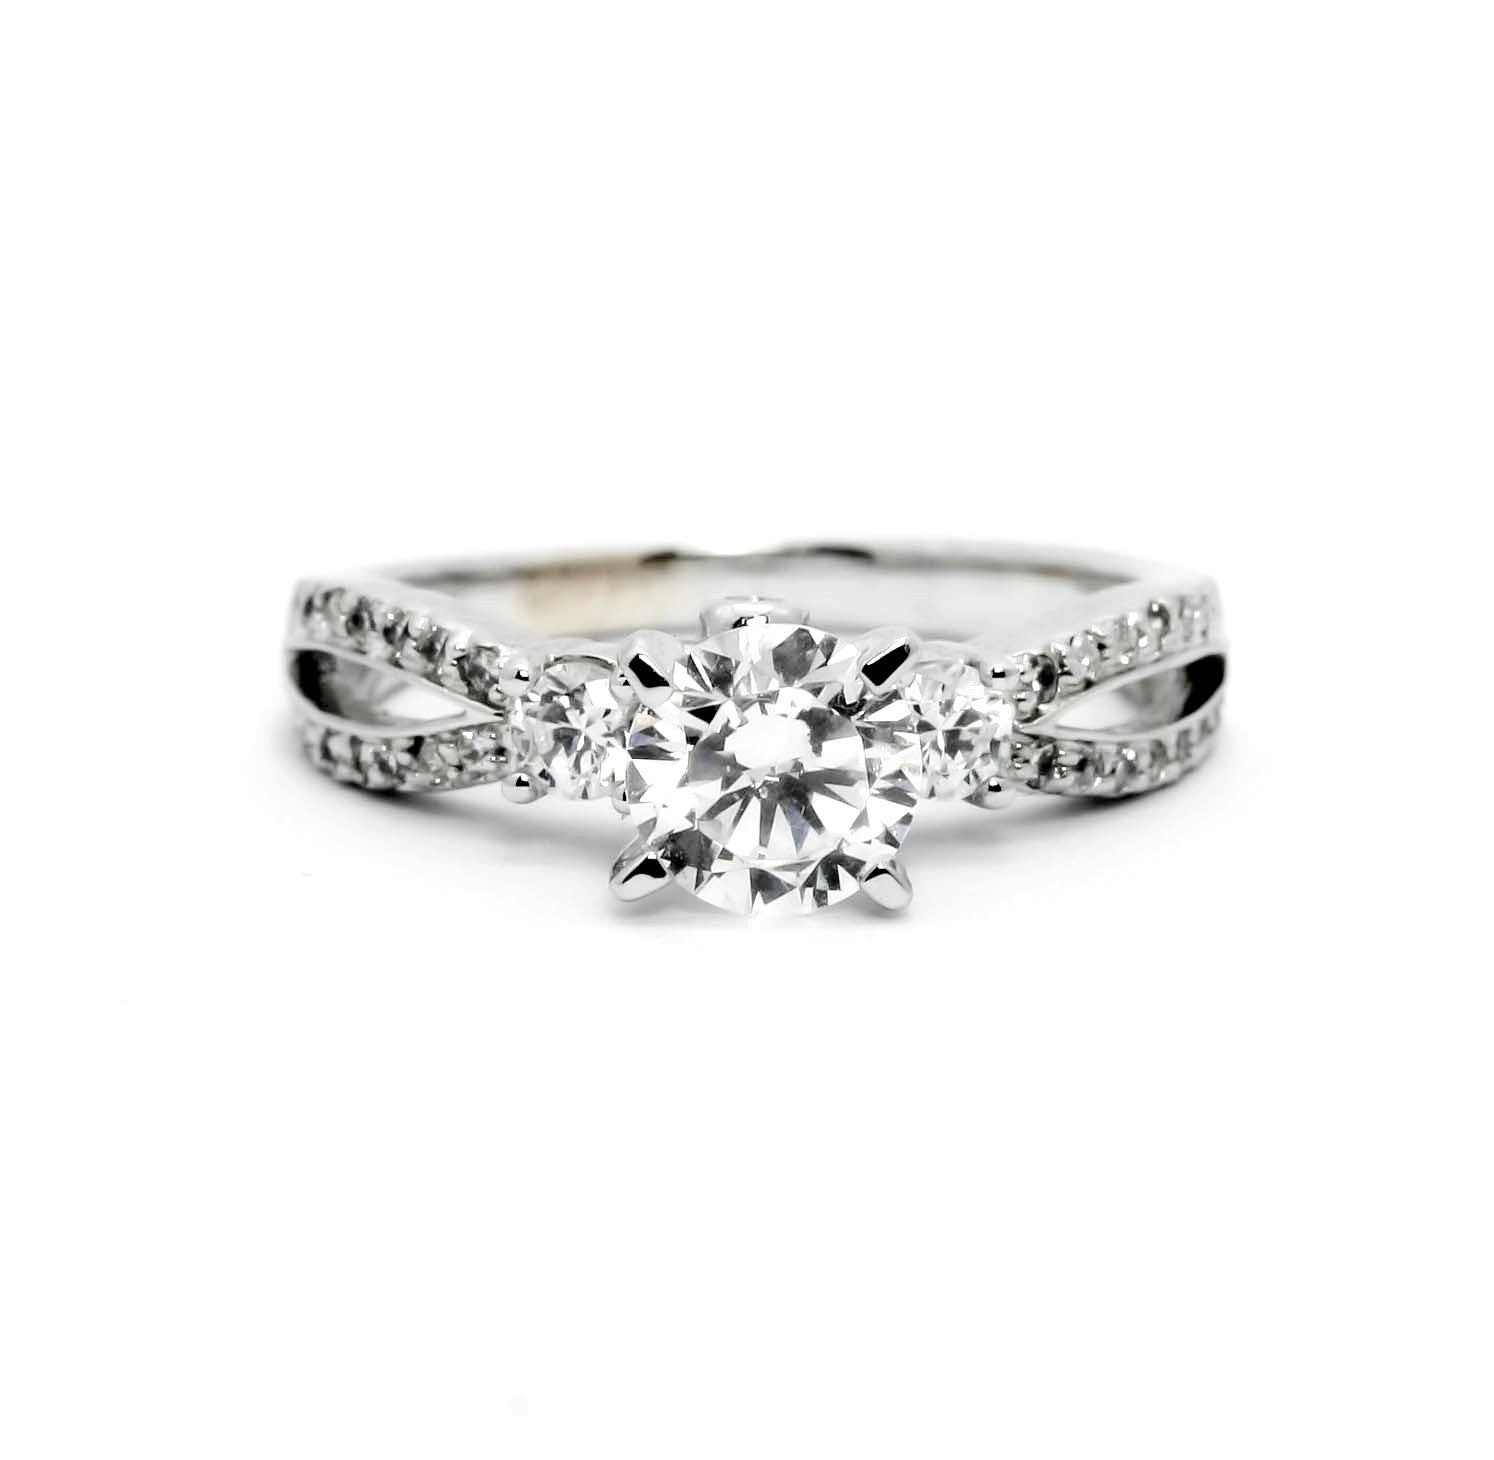 Semi Mount Engagement Ring,  Unique For 1 Carat Center Stone, Solitaire, Split Shank, Anniversary Ring - 76306